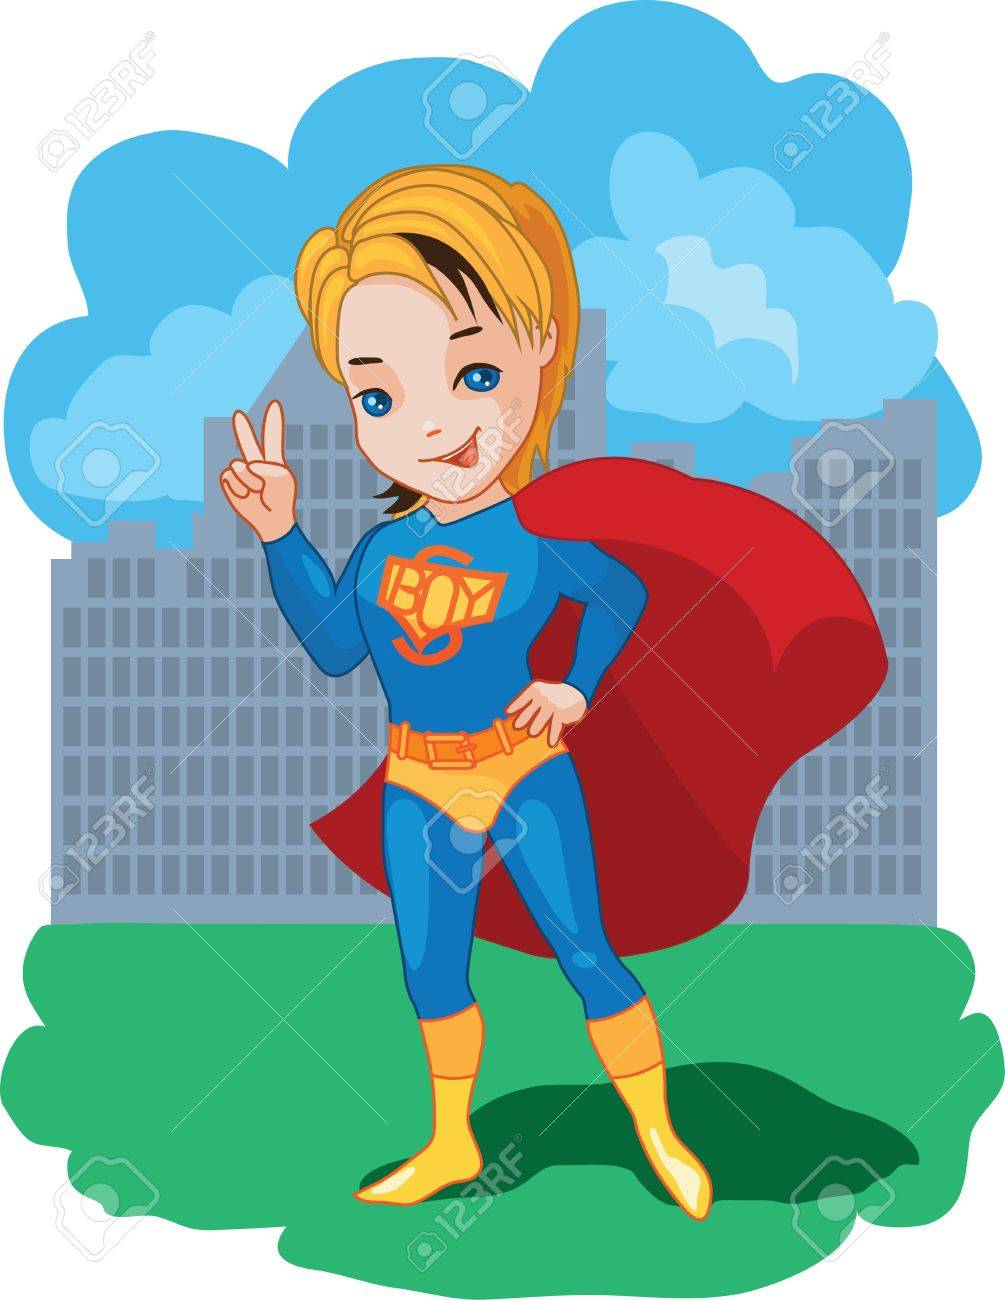 Super Boy with victory symbol illustration Stock Vector - 17459203